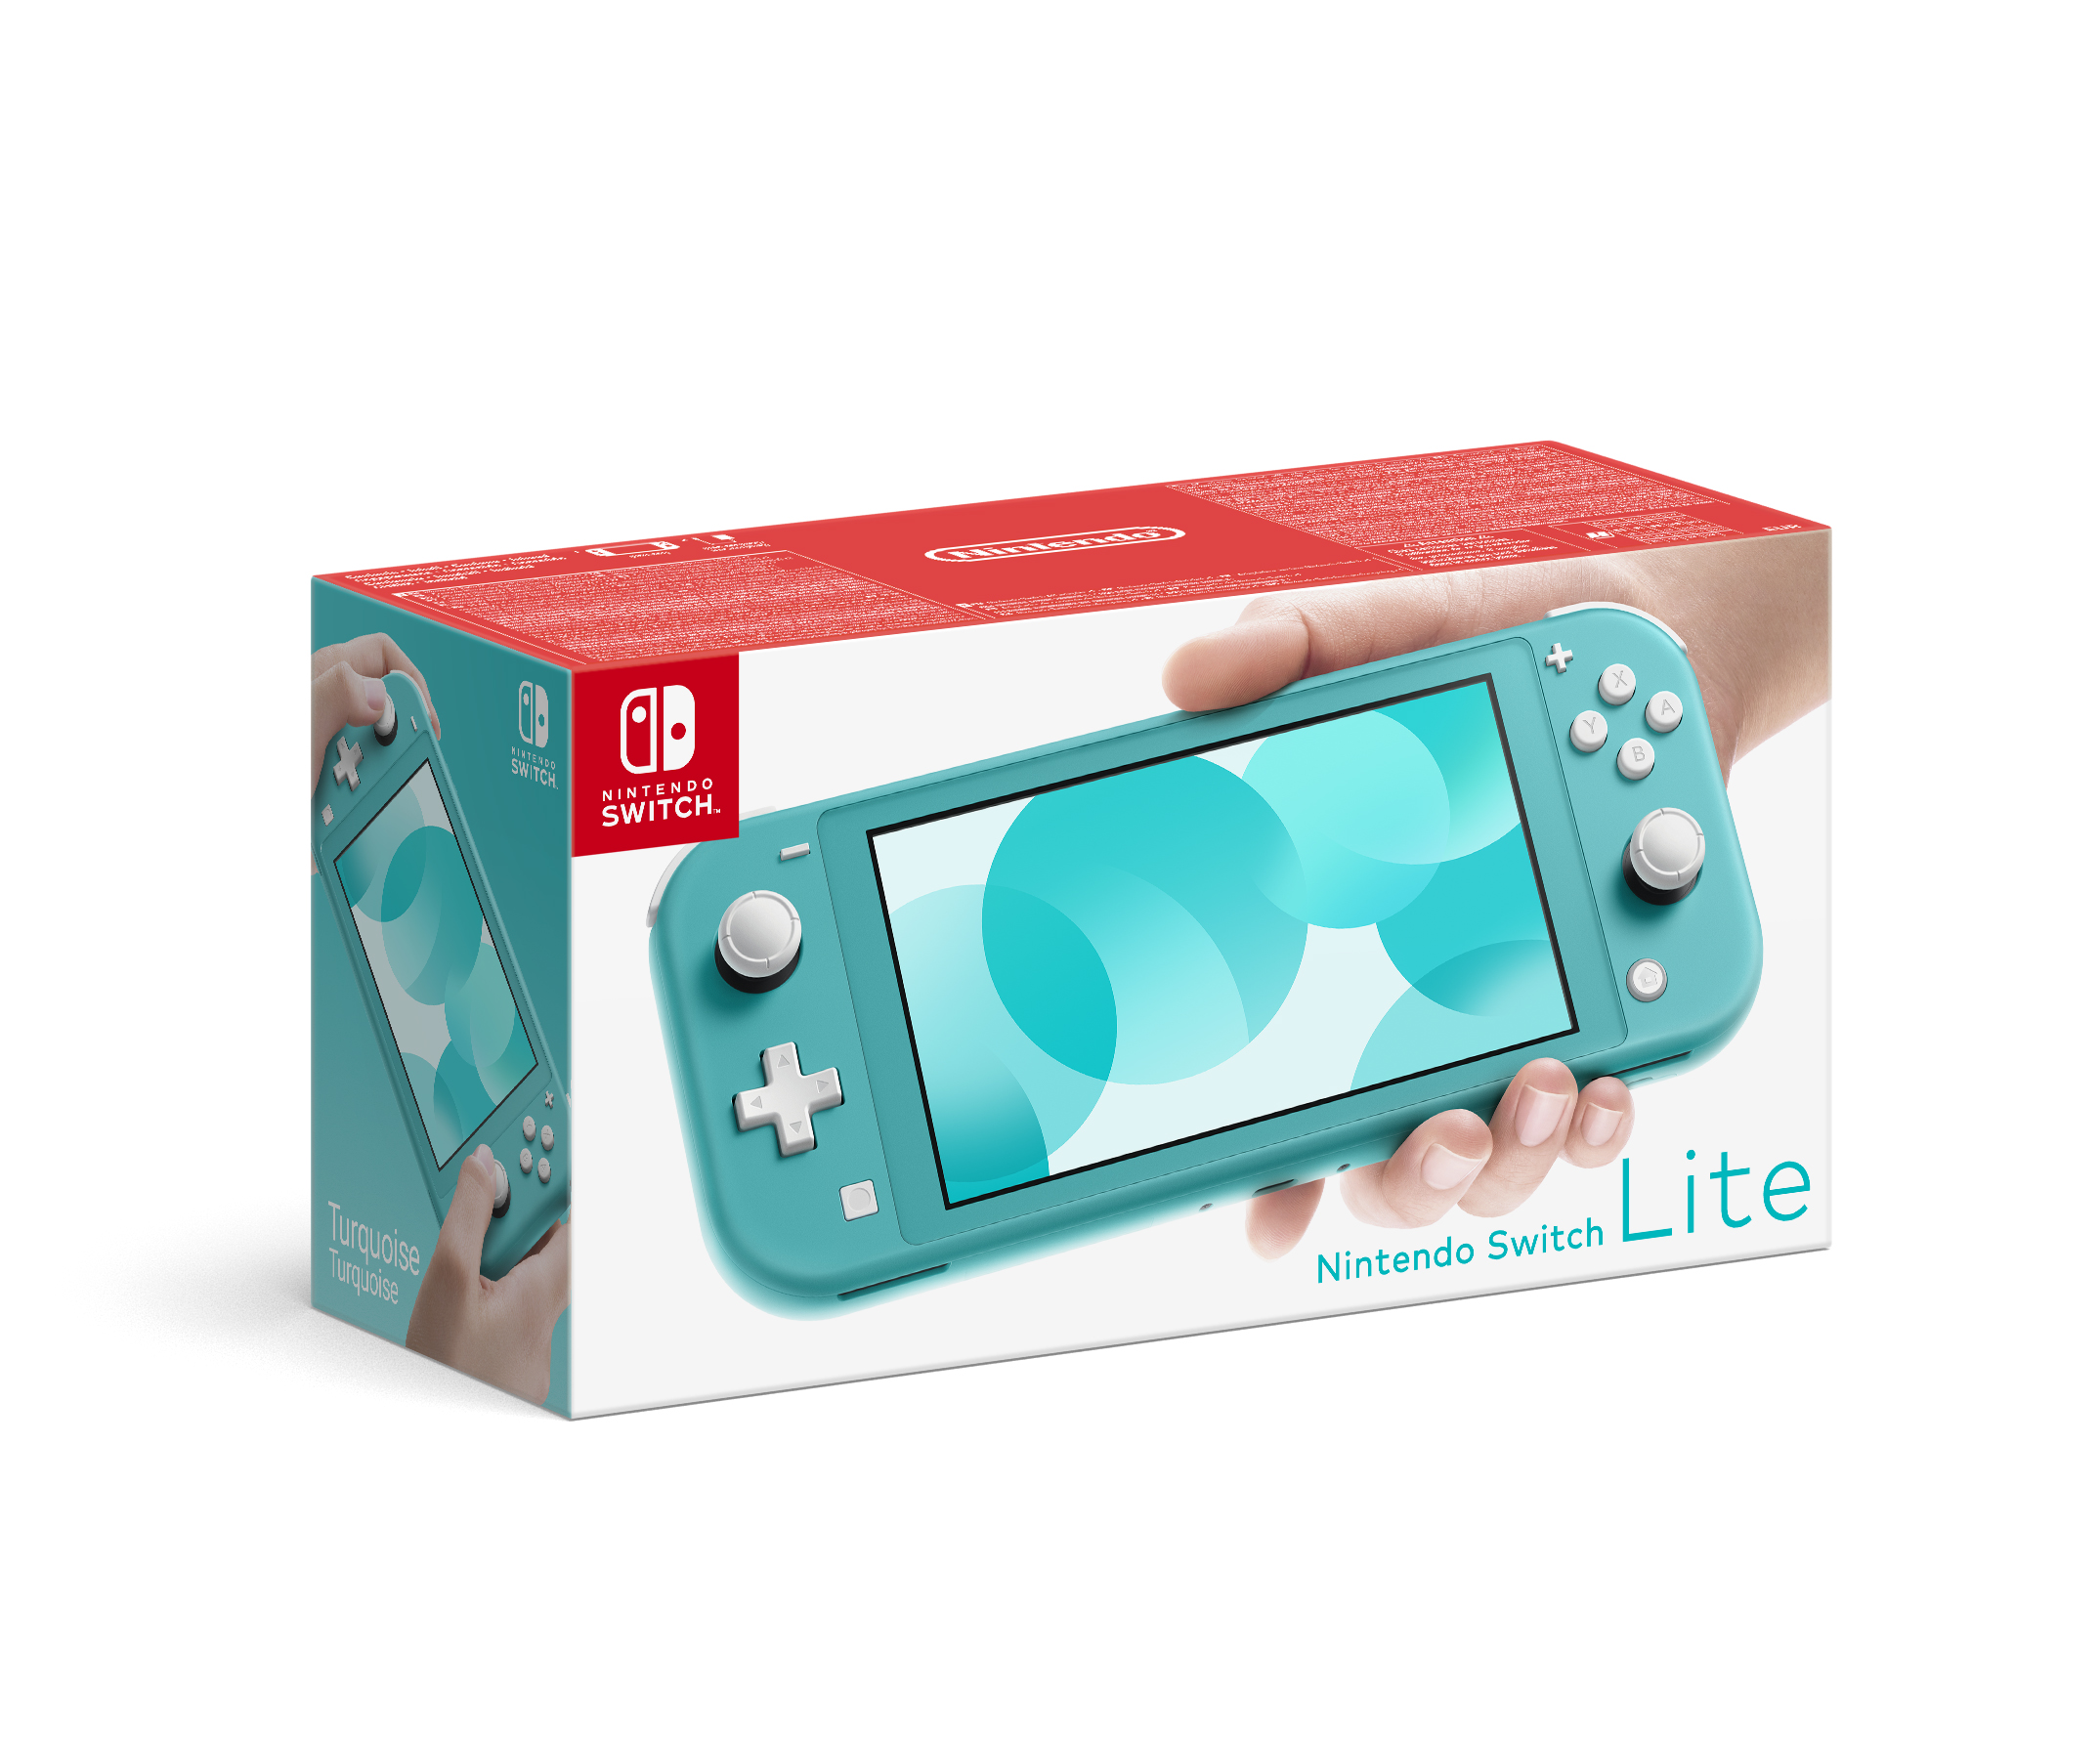 Protect your Nintendo Switch Lite with an official Flip Cover case